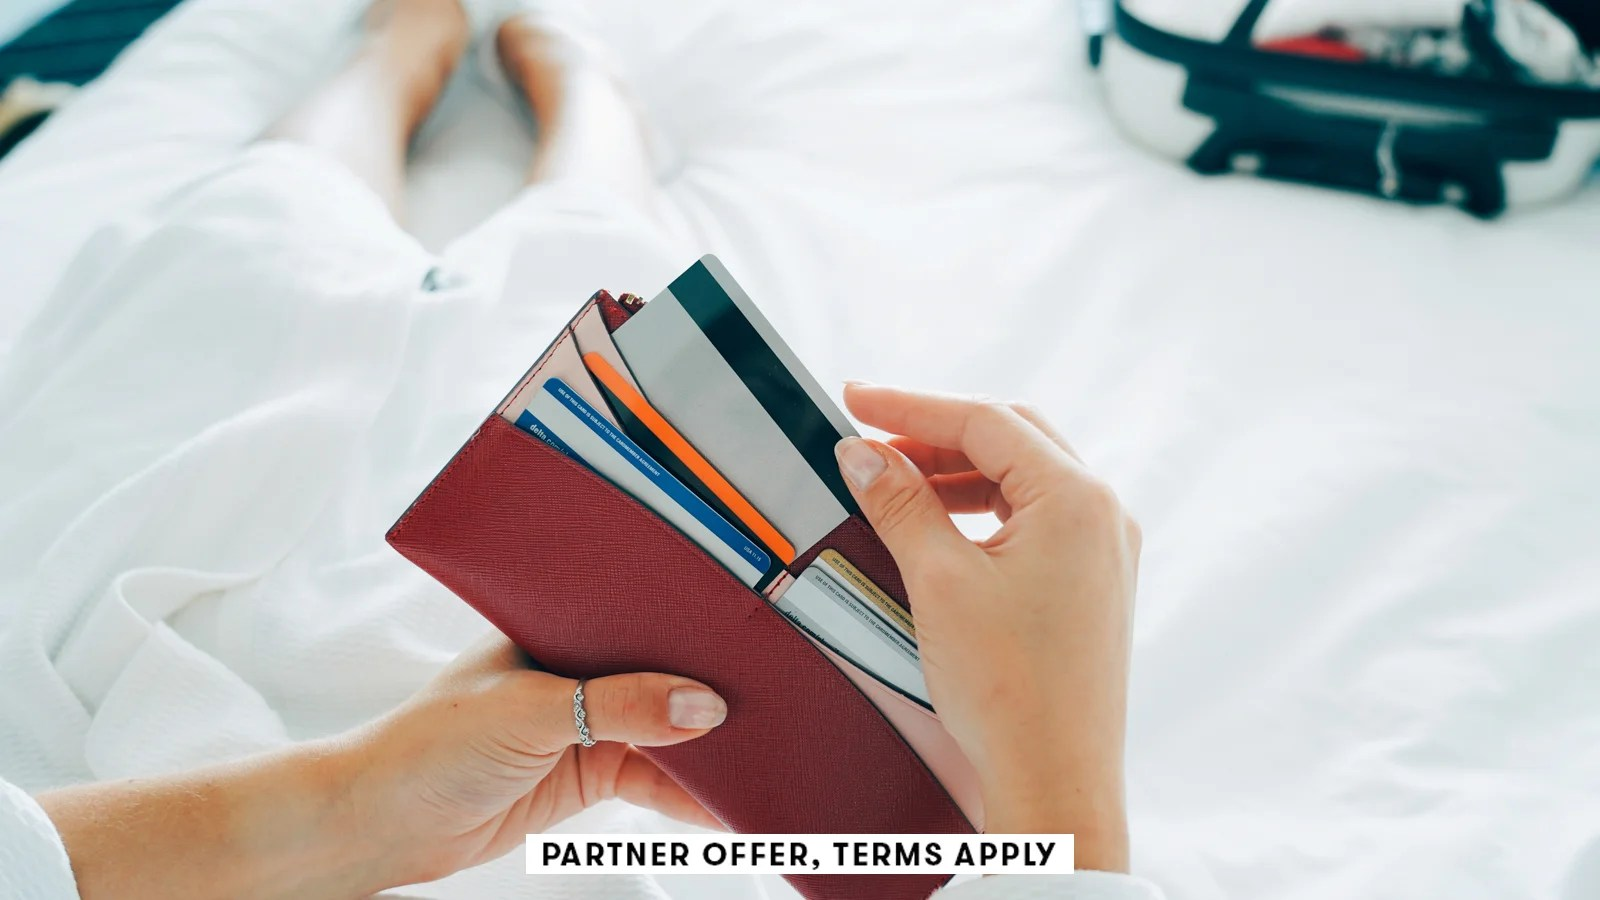 Credit cards that offer fantastic value - The Points Guy